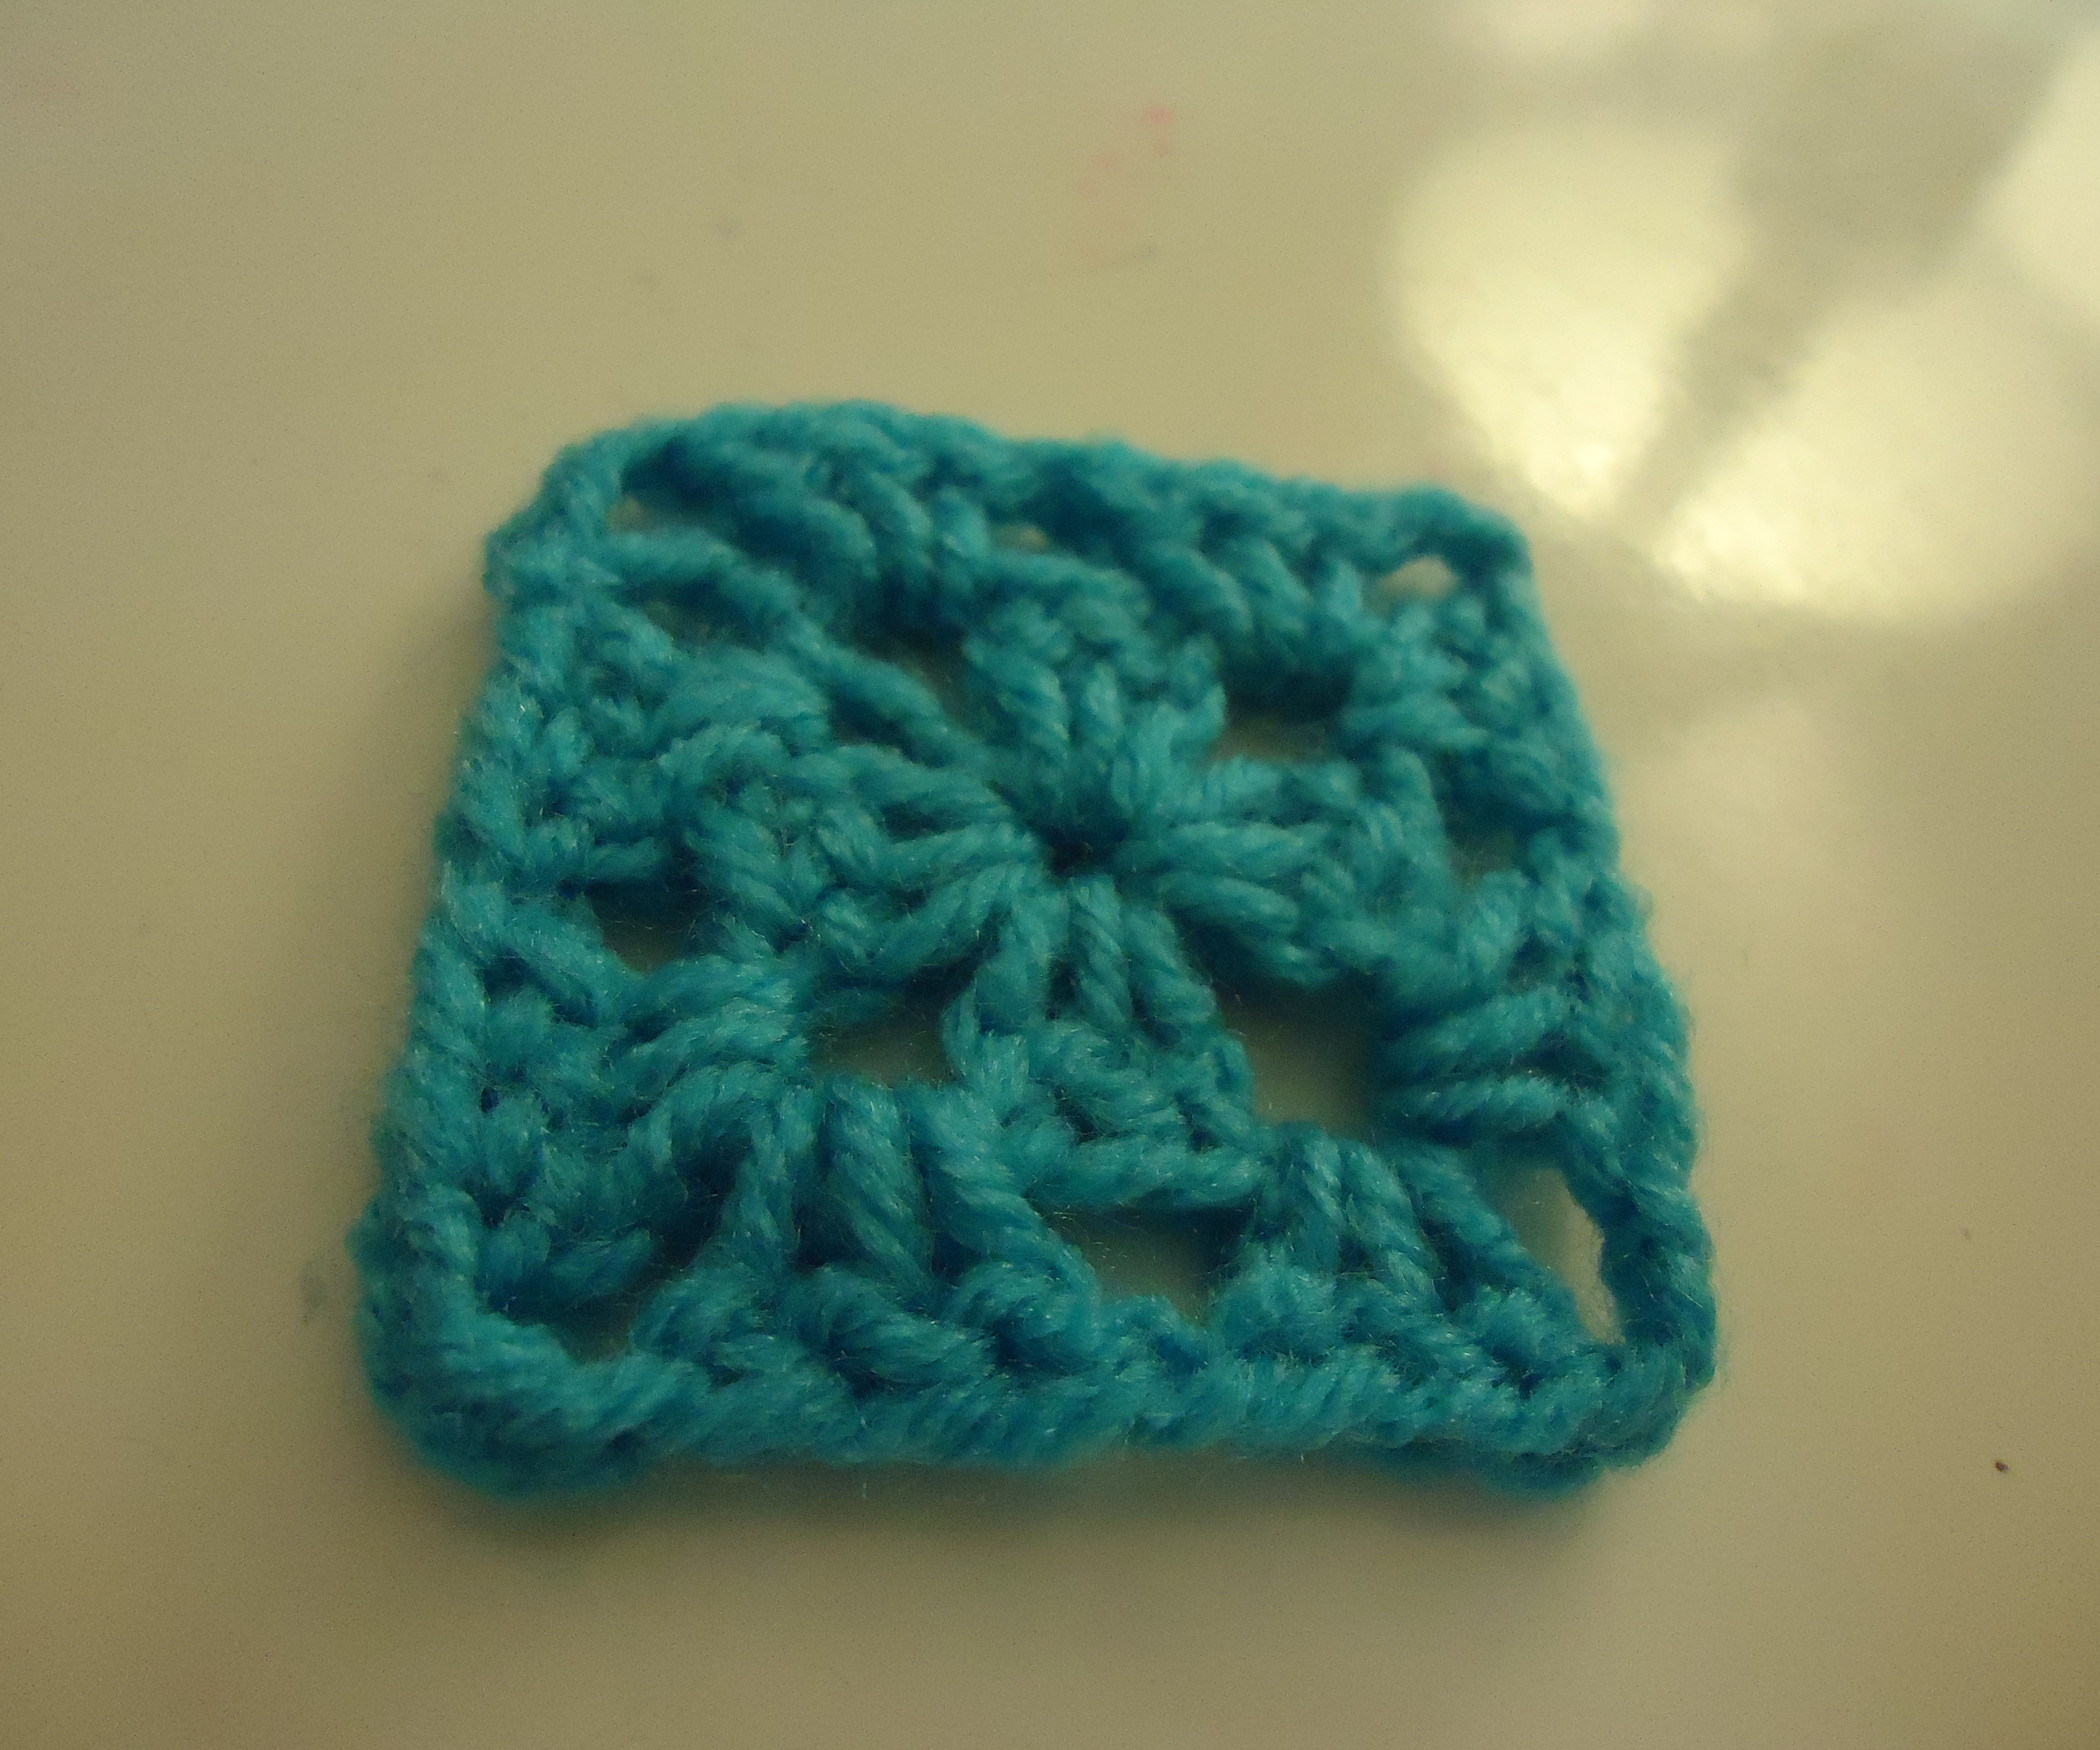 Awesome Crochet Granny Square Tutorial Beginner Dancox for Crochet for Beginners Granny Square Of Unique 49 Ideas Crochet for Beginners Granny Square